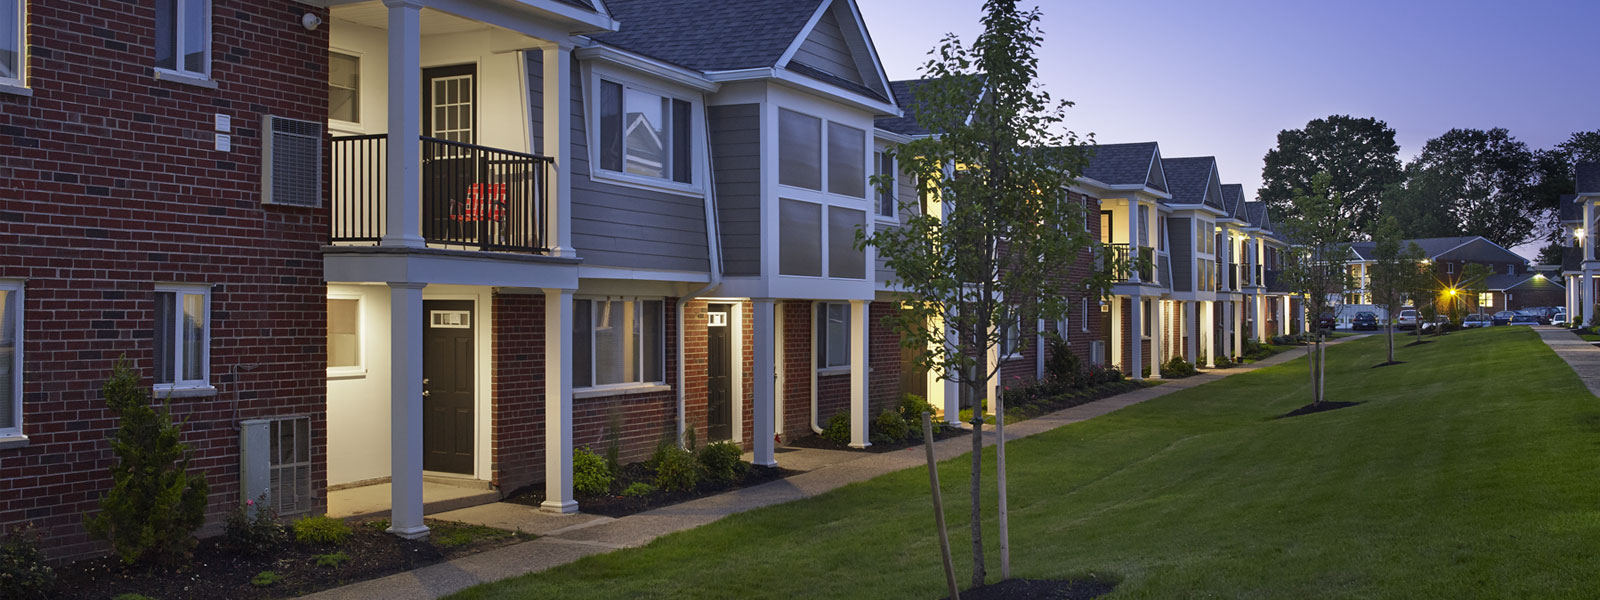 Bedroom Apartments For Rent In Delaware County Pa